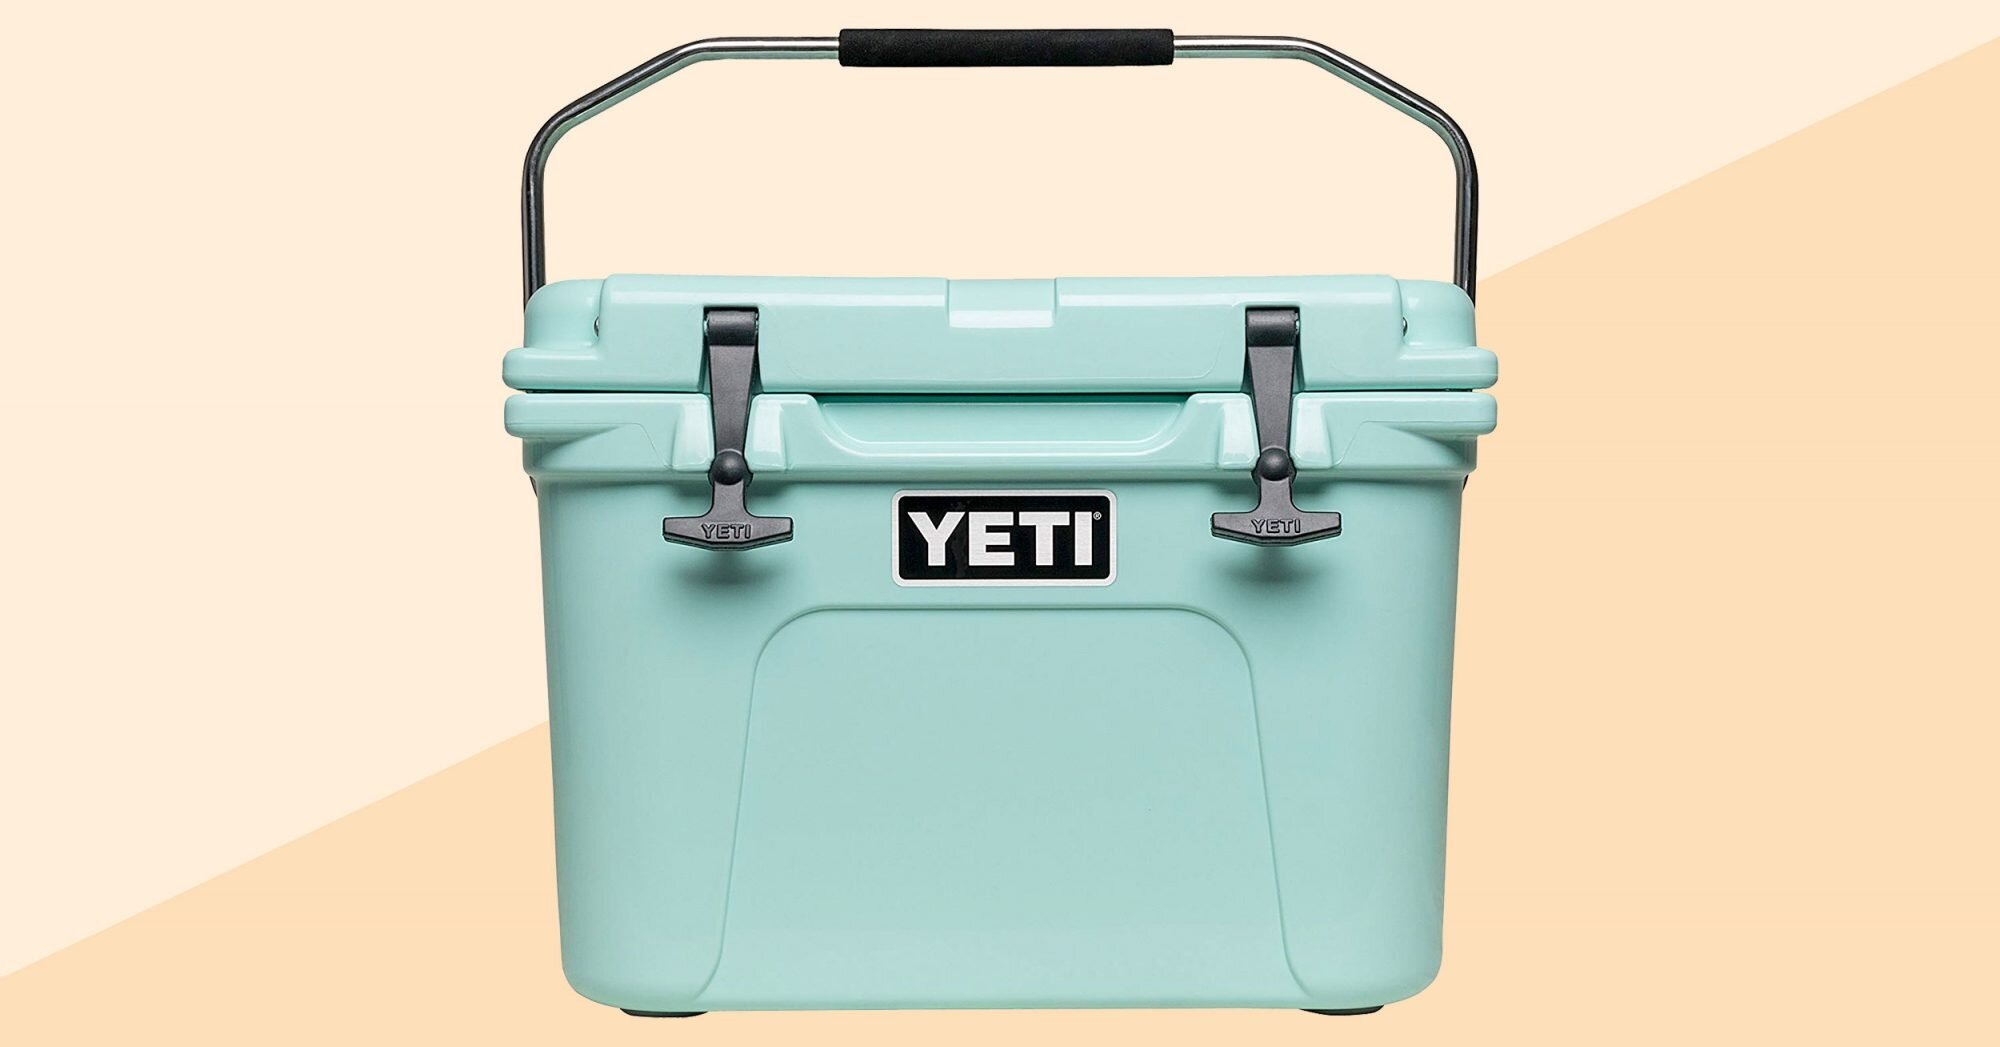 Yeti Roadie Cooler Is on Sale After Amazon Prime Day 2019